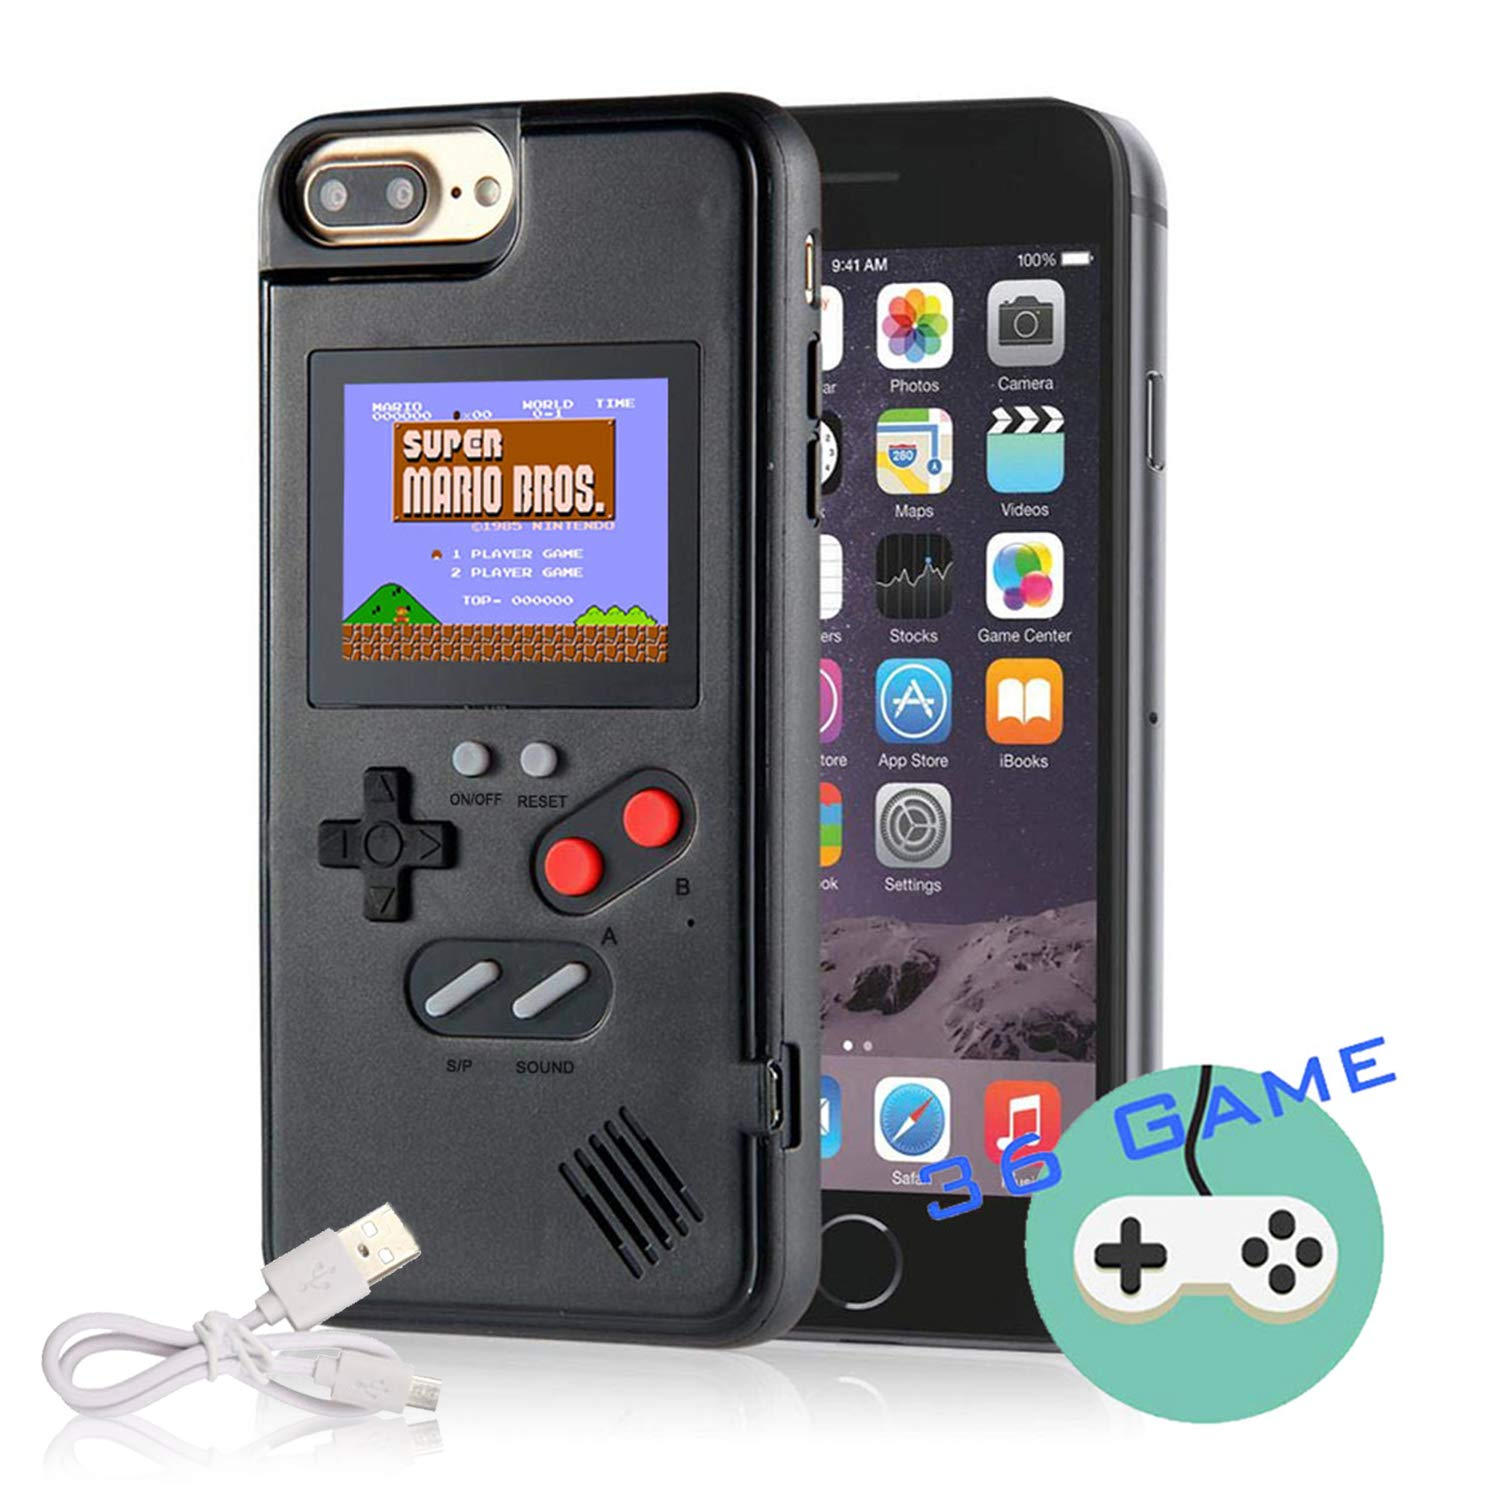 Gameboy Case For Iphone Autbye Retro 3d Phone Case Game Console With 36 Classic Game Color Display Shockproof Video Game Phone Case For Iphone 11